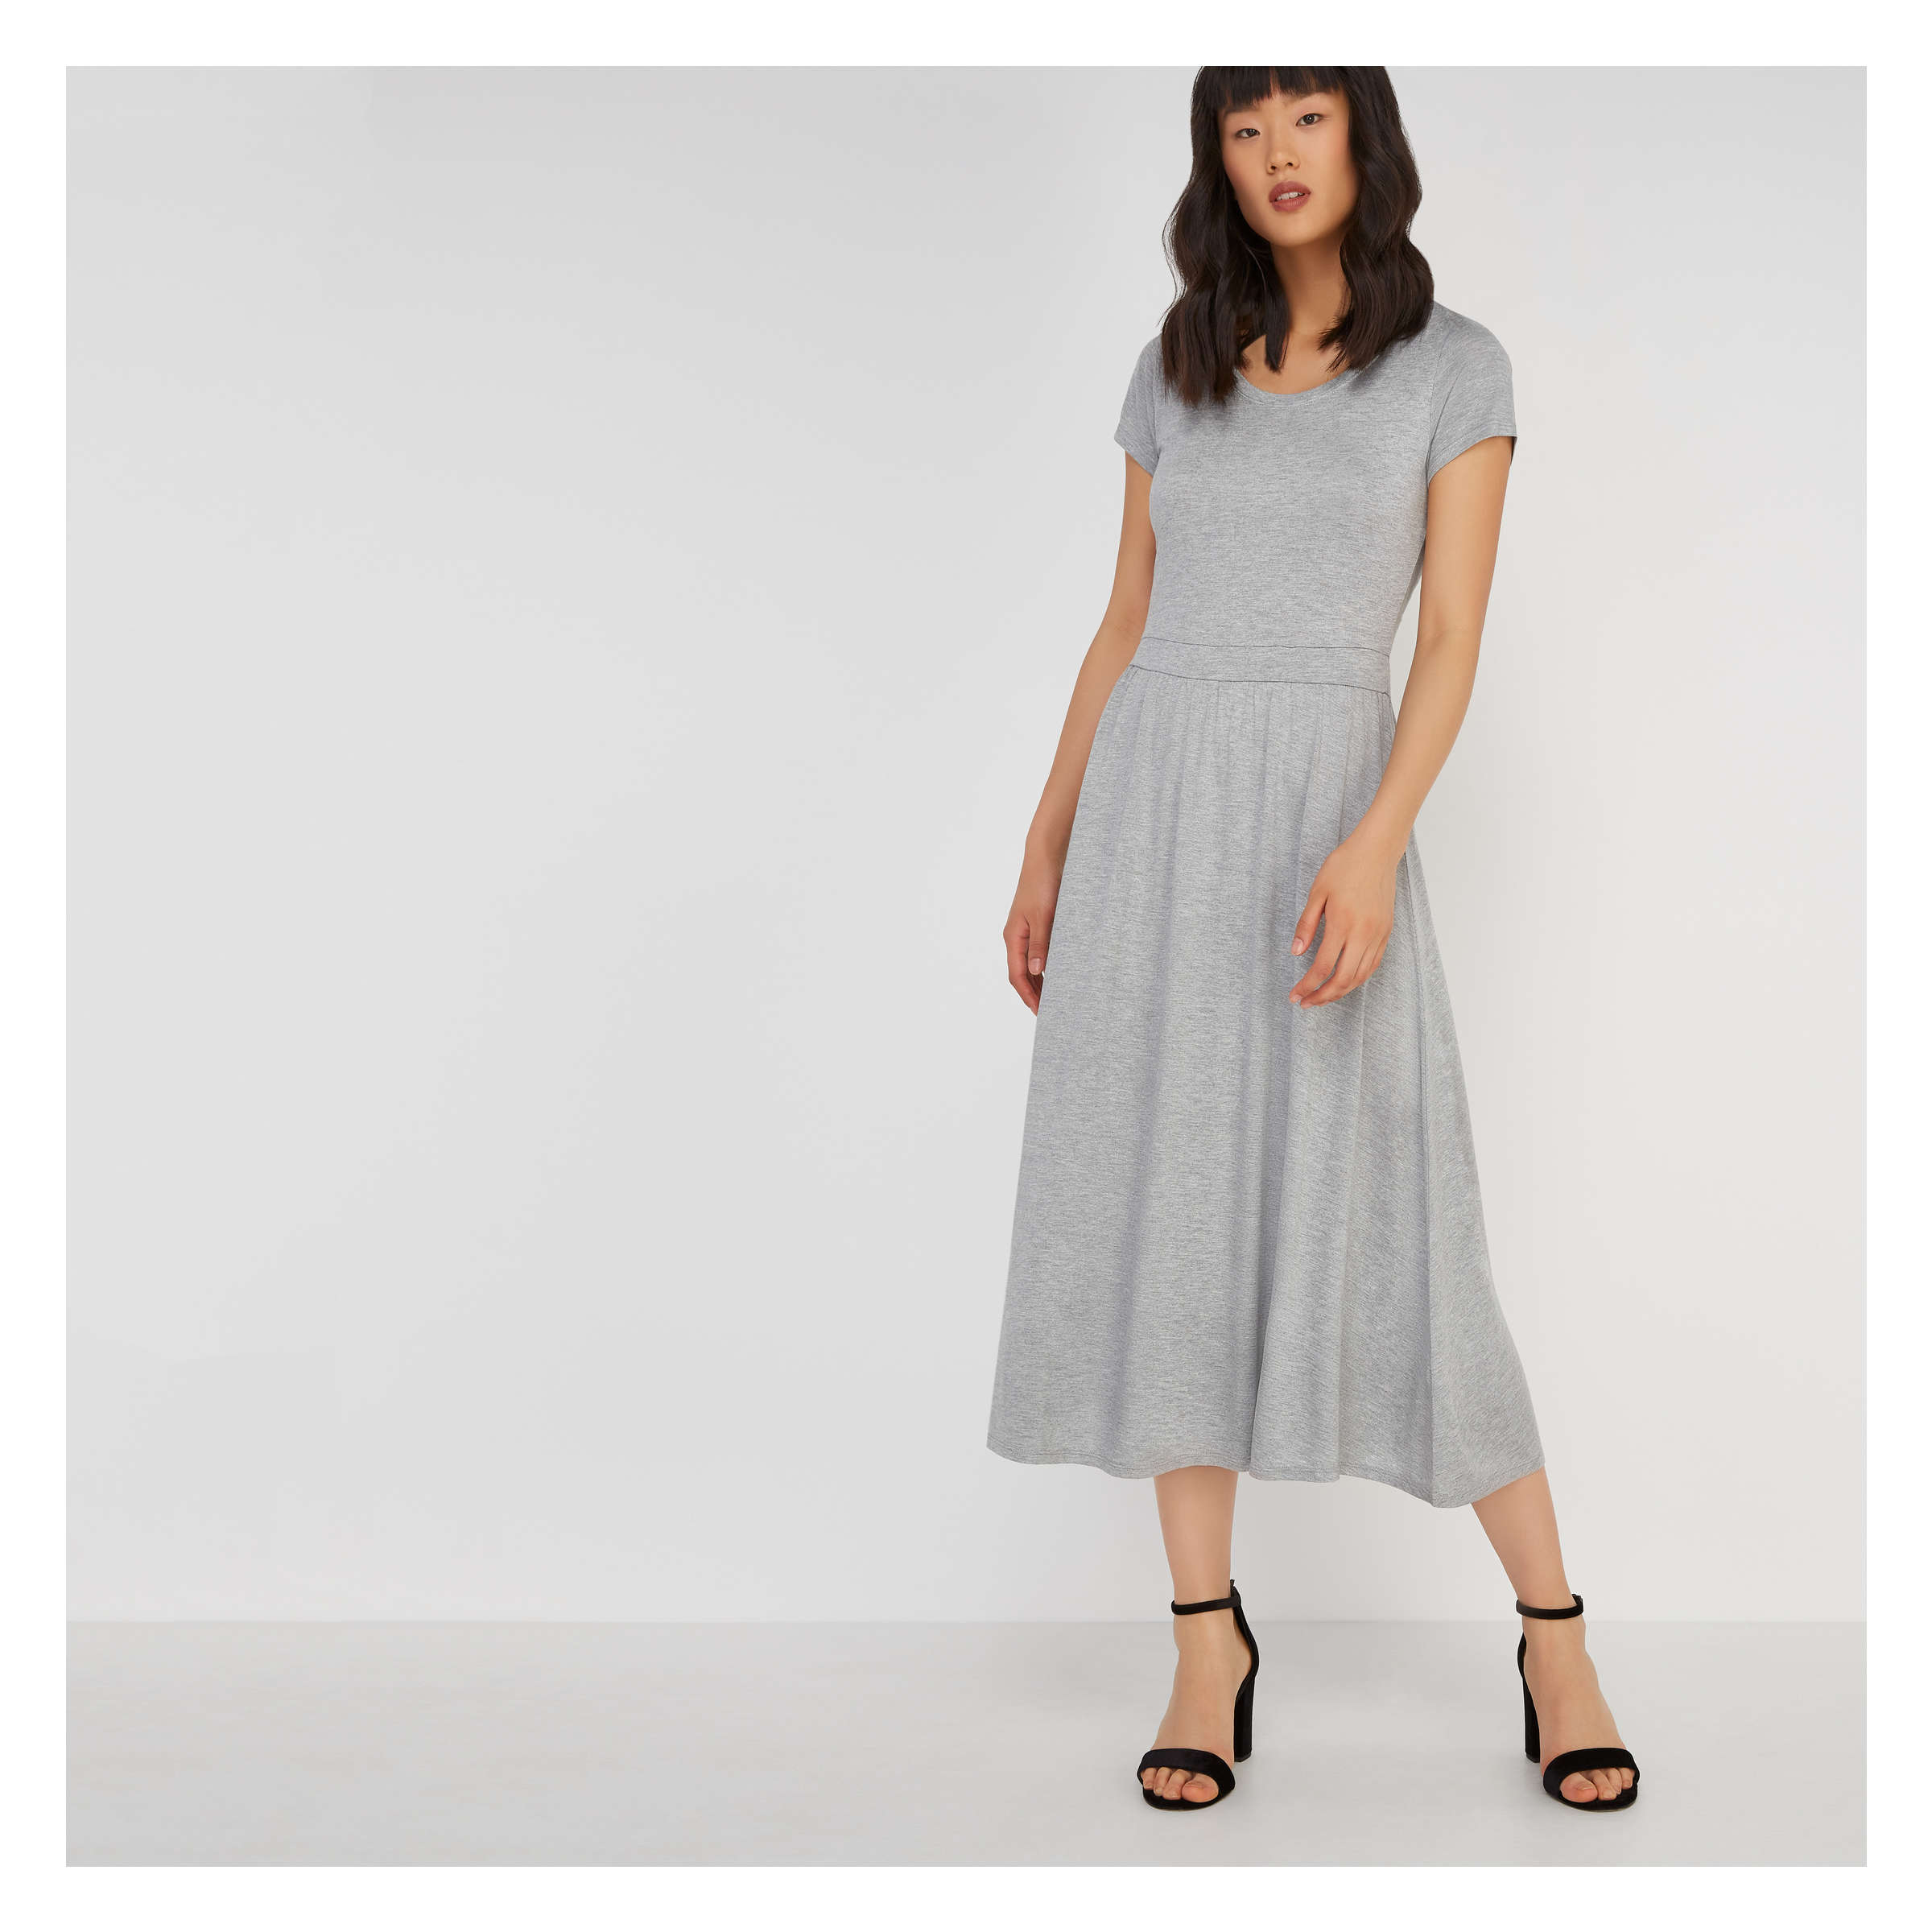 Short Sleeve Crew Neck Dress